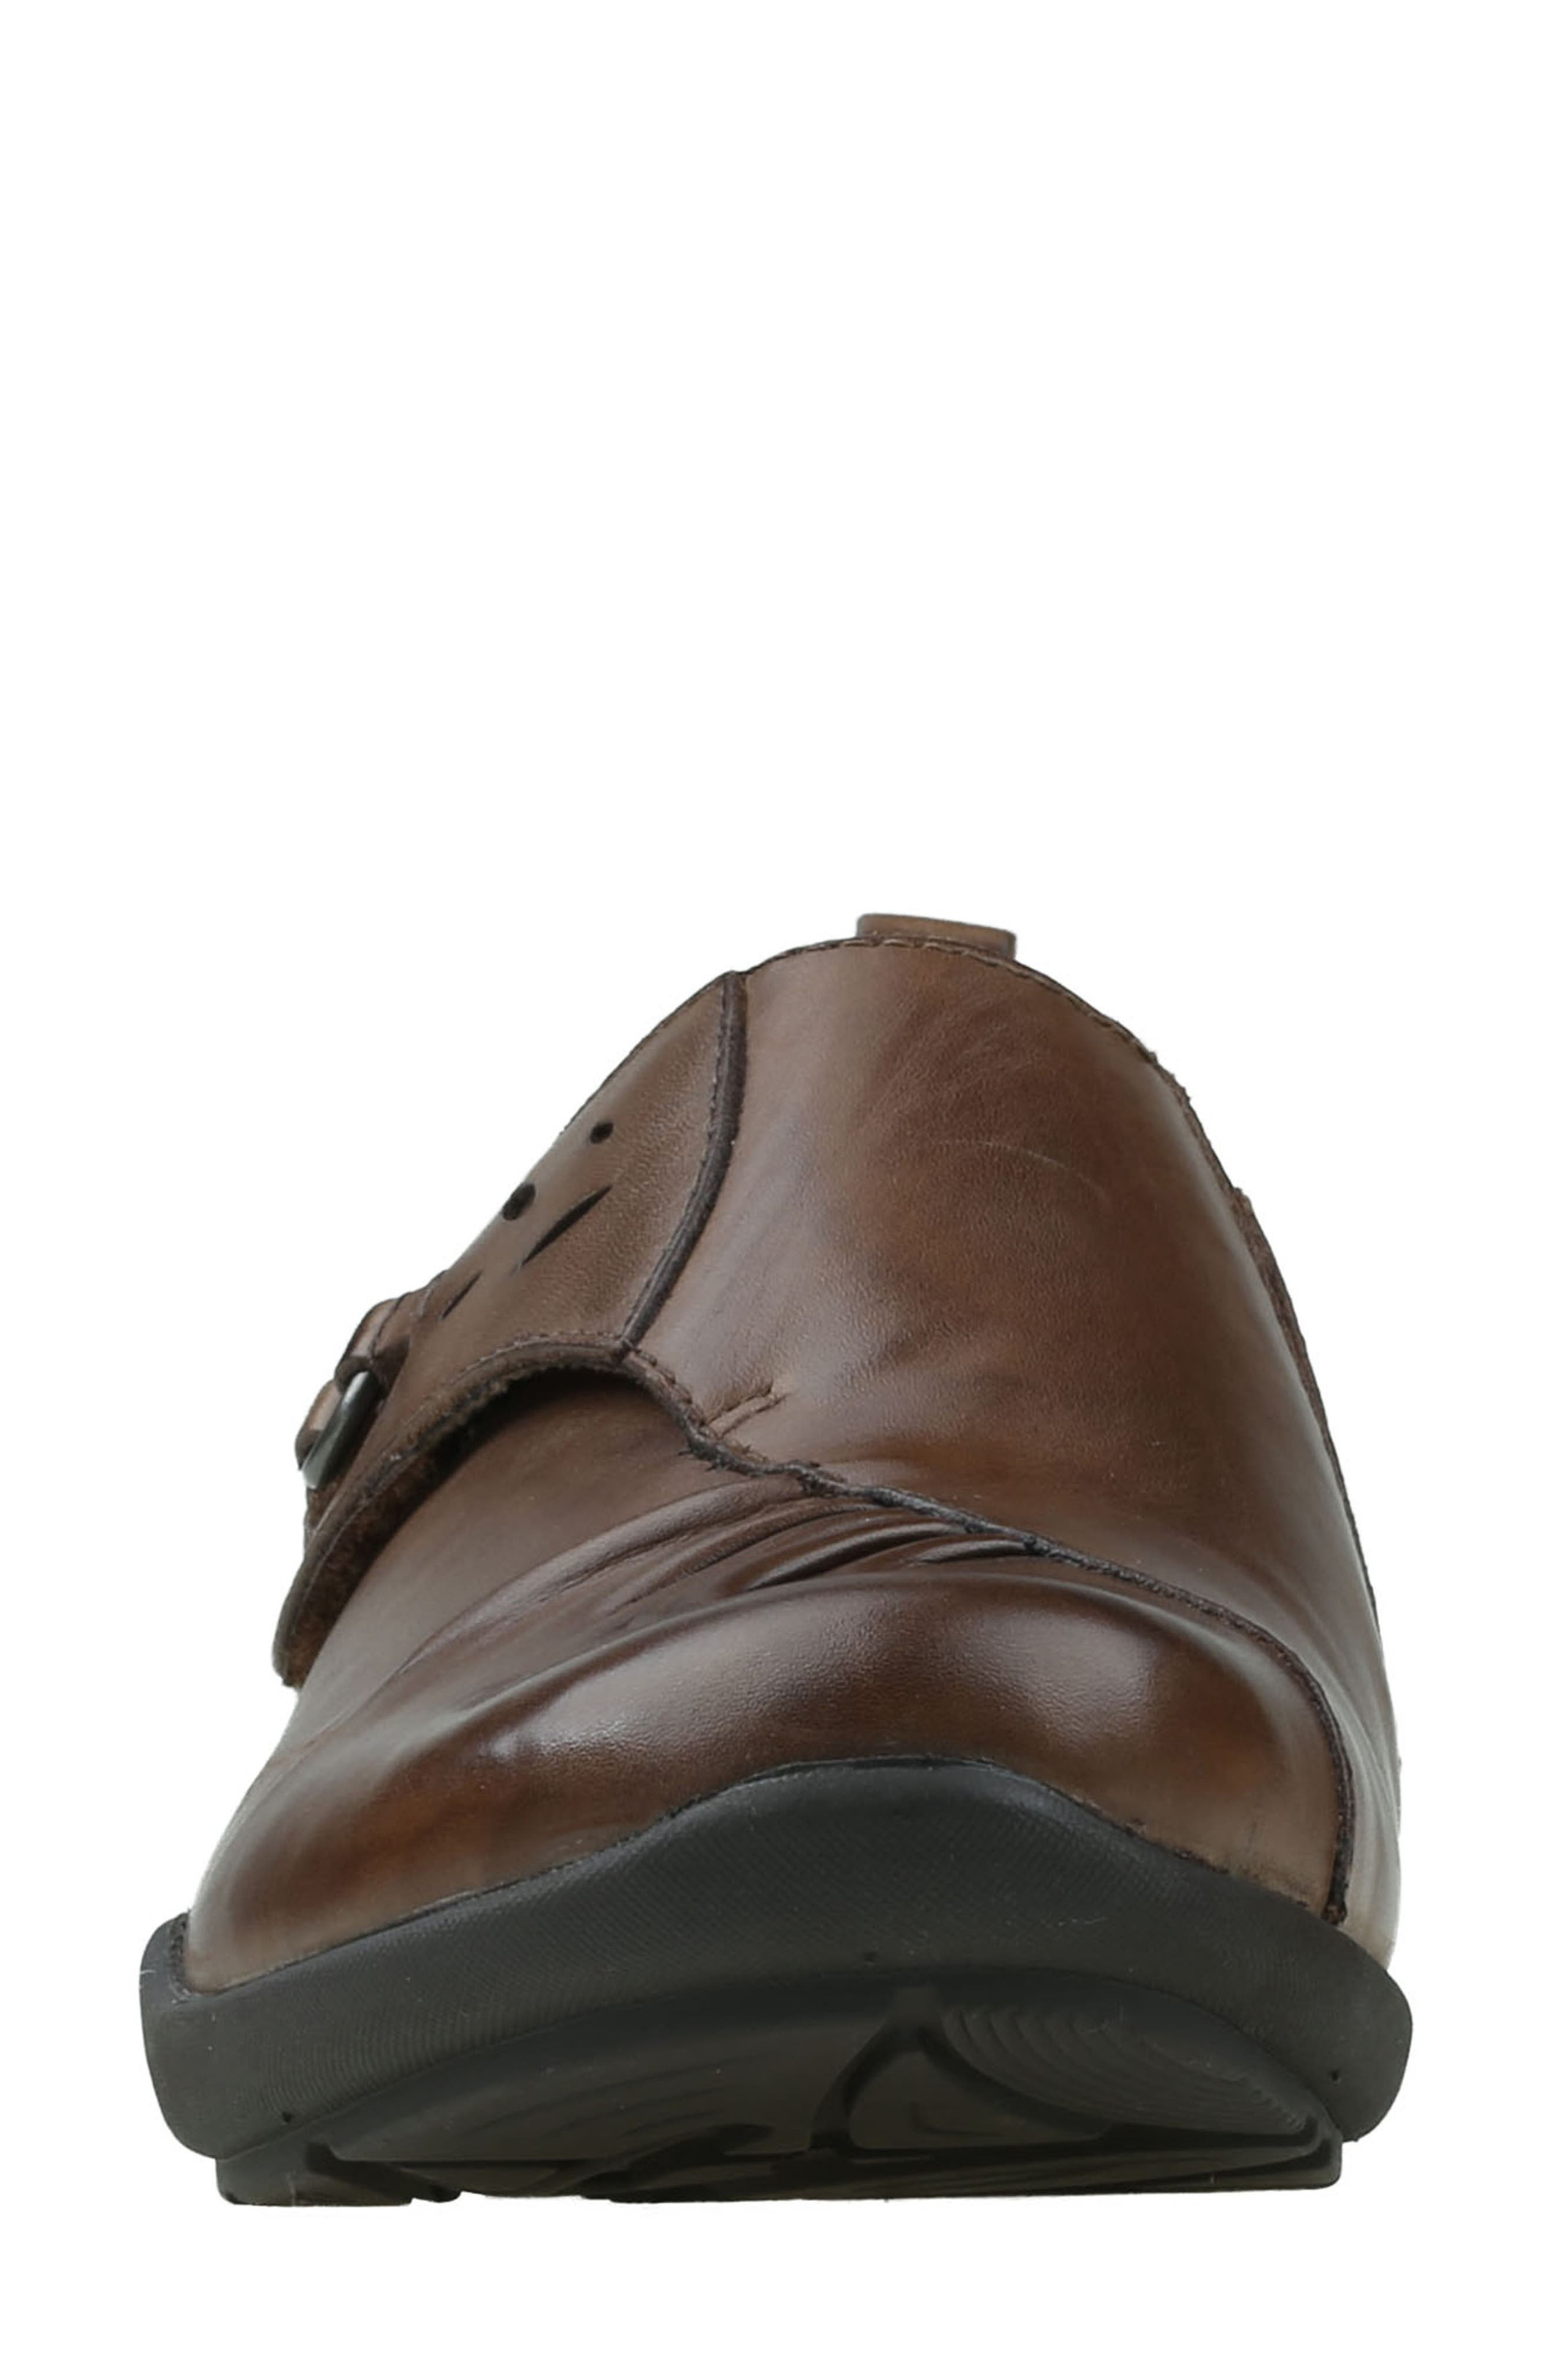 Amity Loafer,                             Alternate thumbnail 4, color,                             Almond Leather